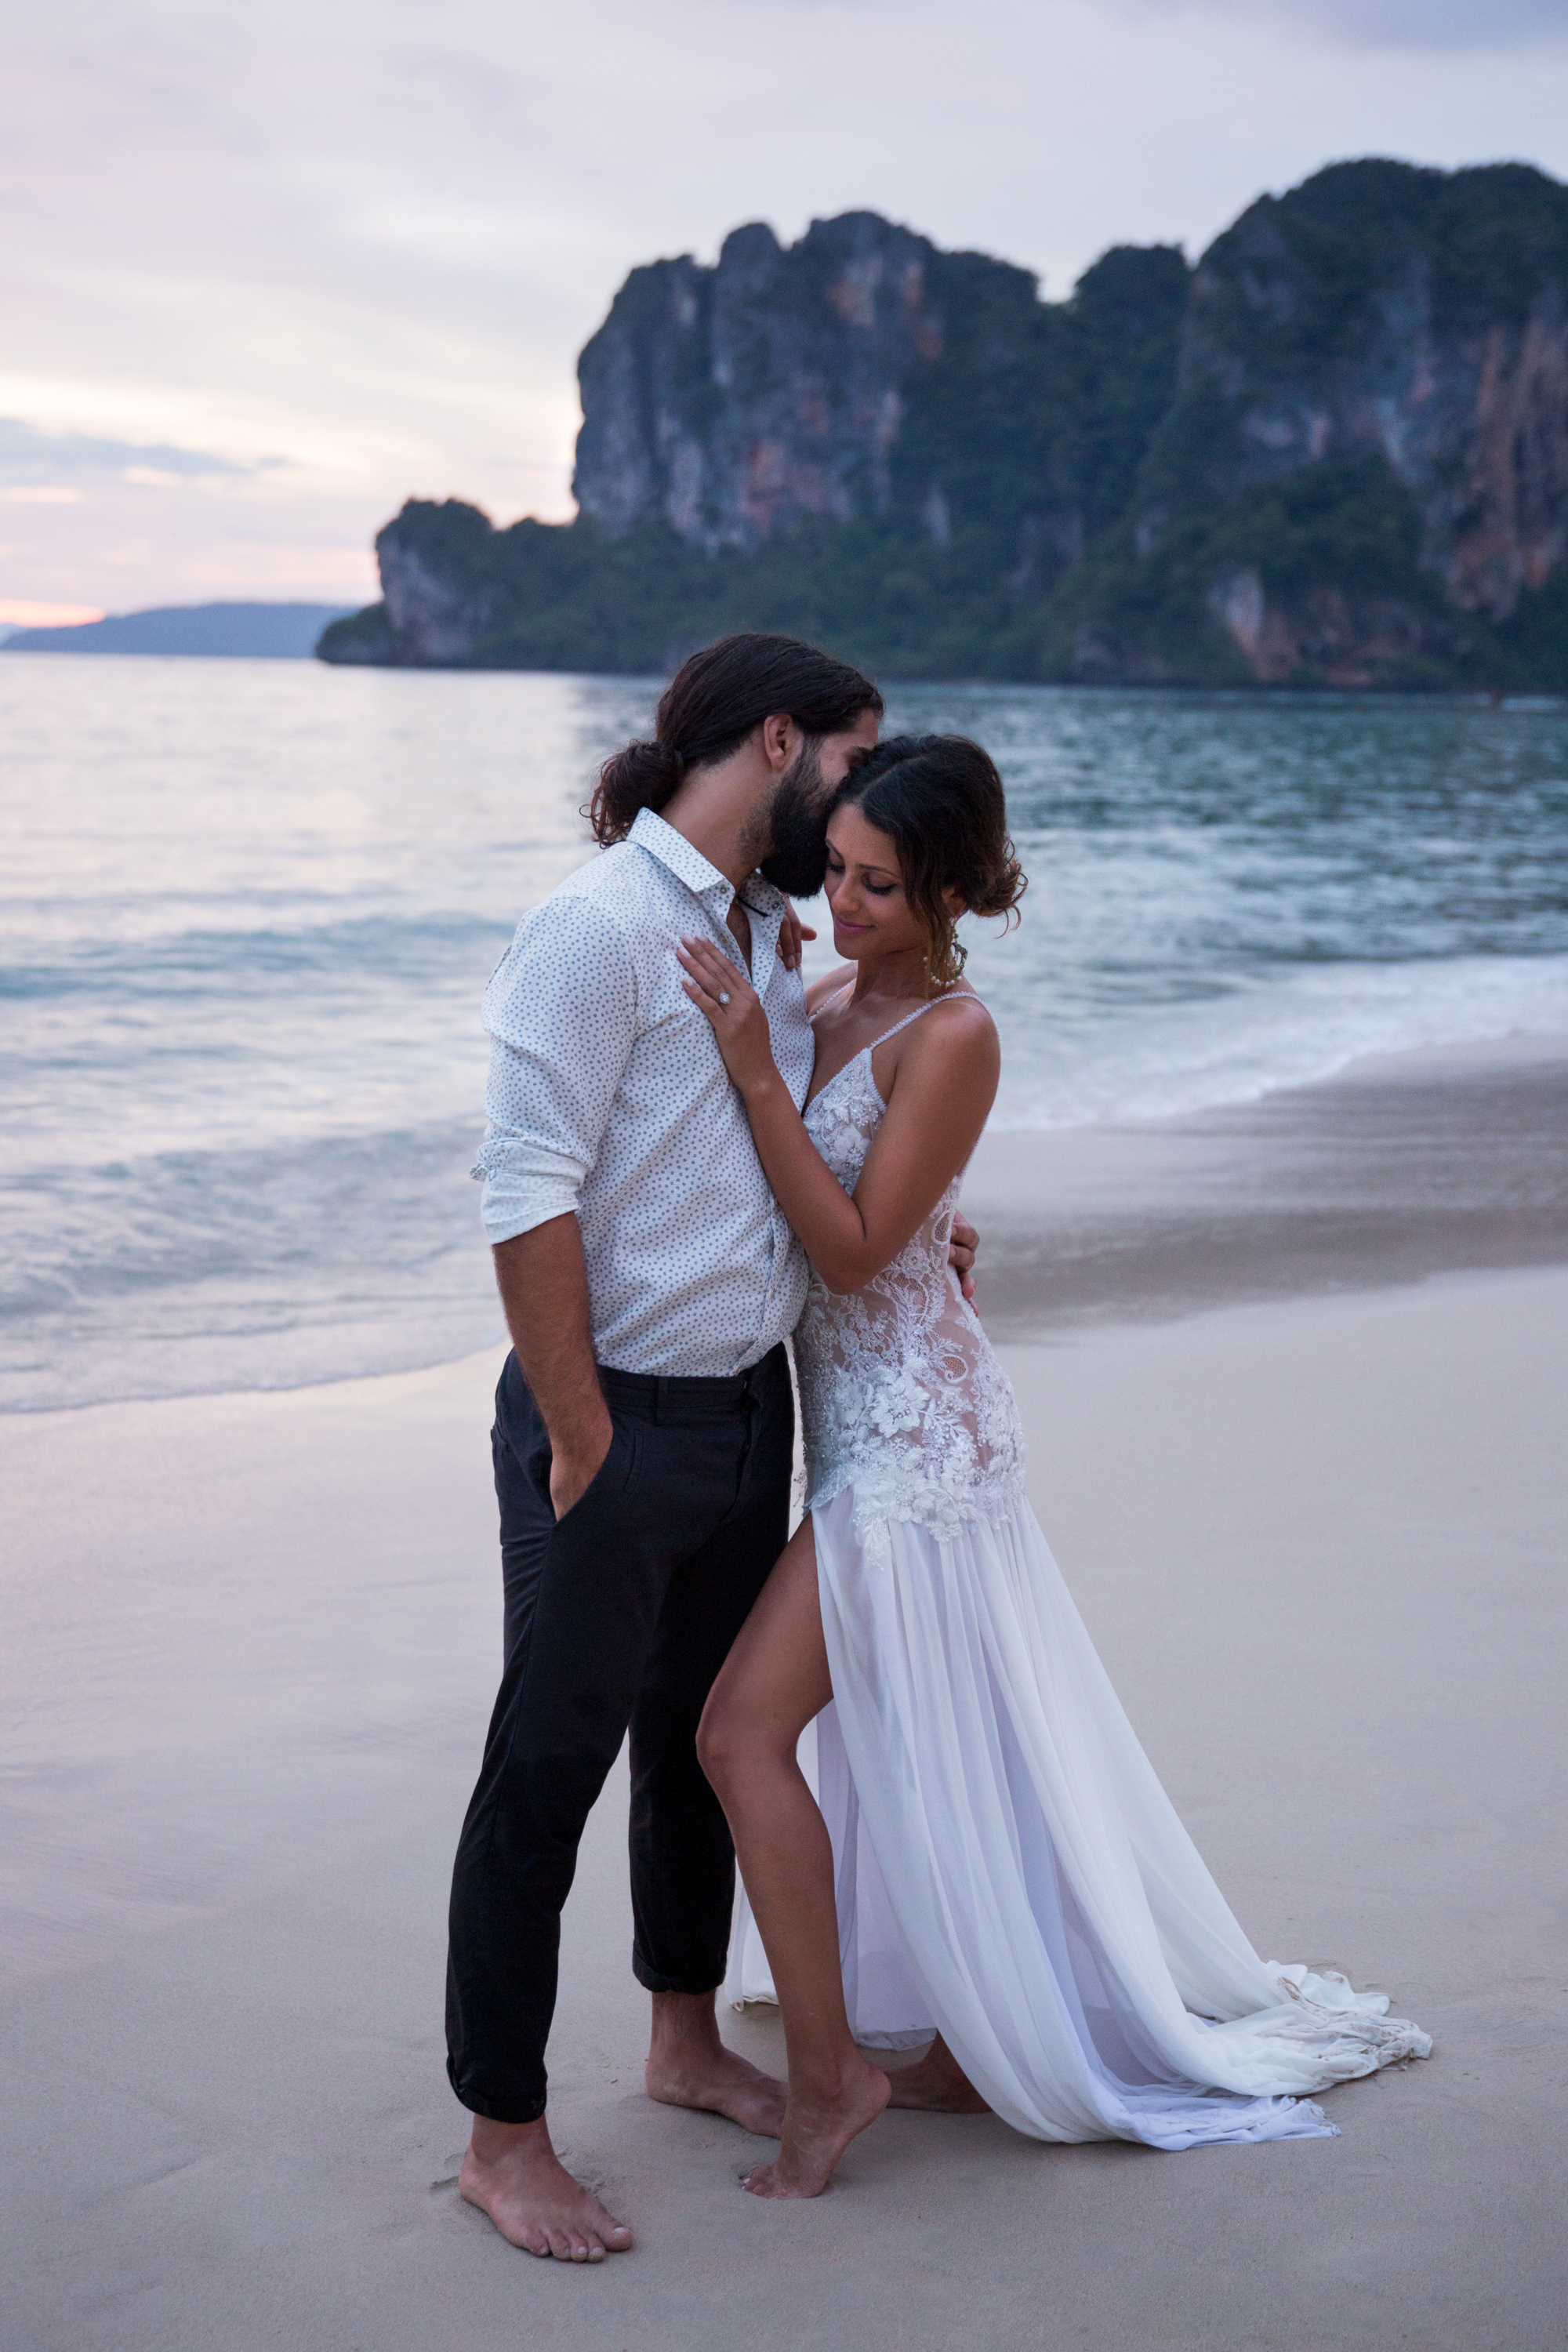 Cuddle Couple Railay Beach Thailand Krabi Zsuzsi Pal Photography Wedding Sunset